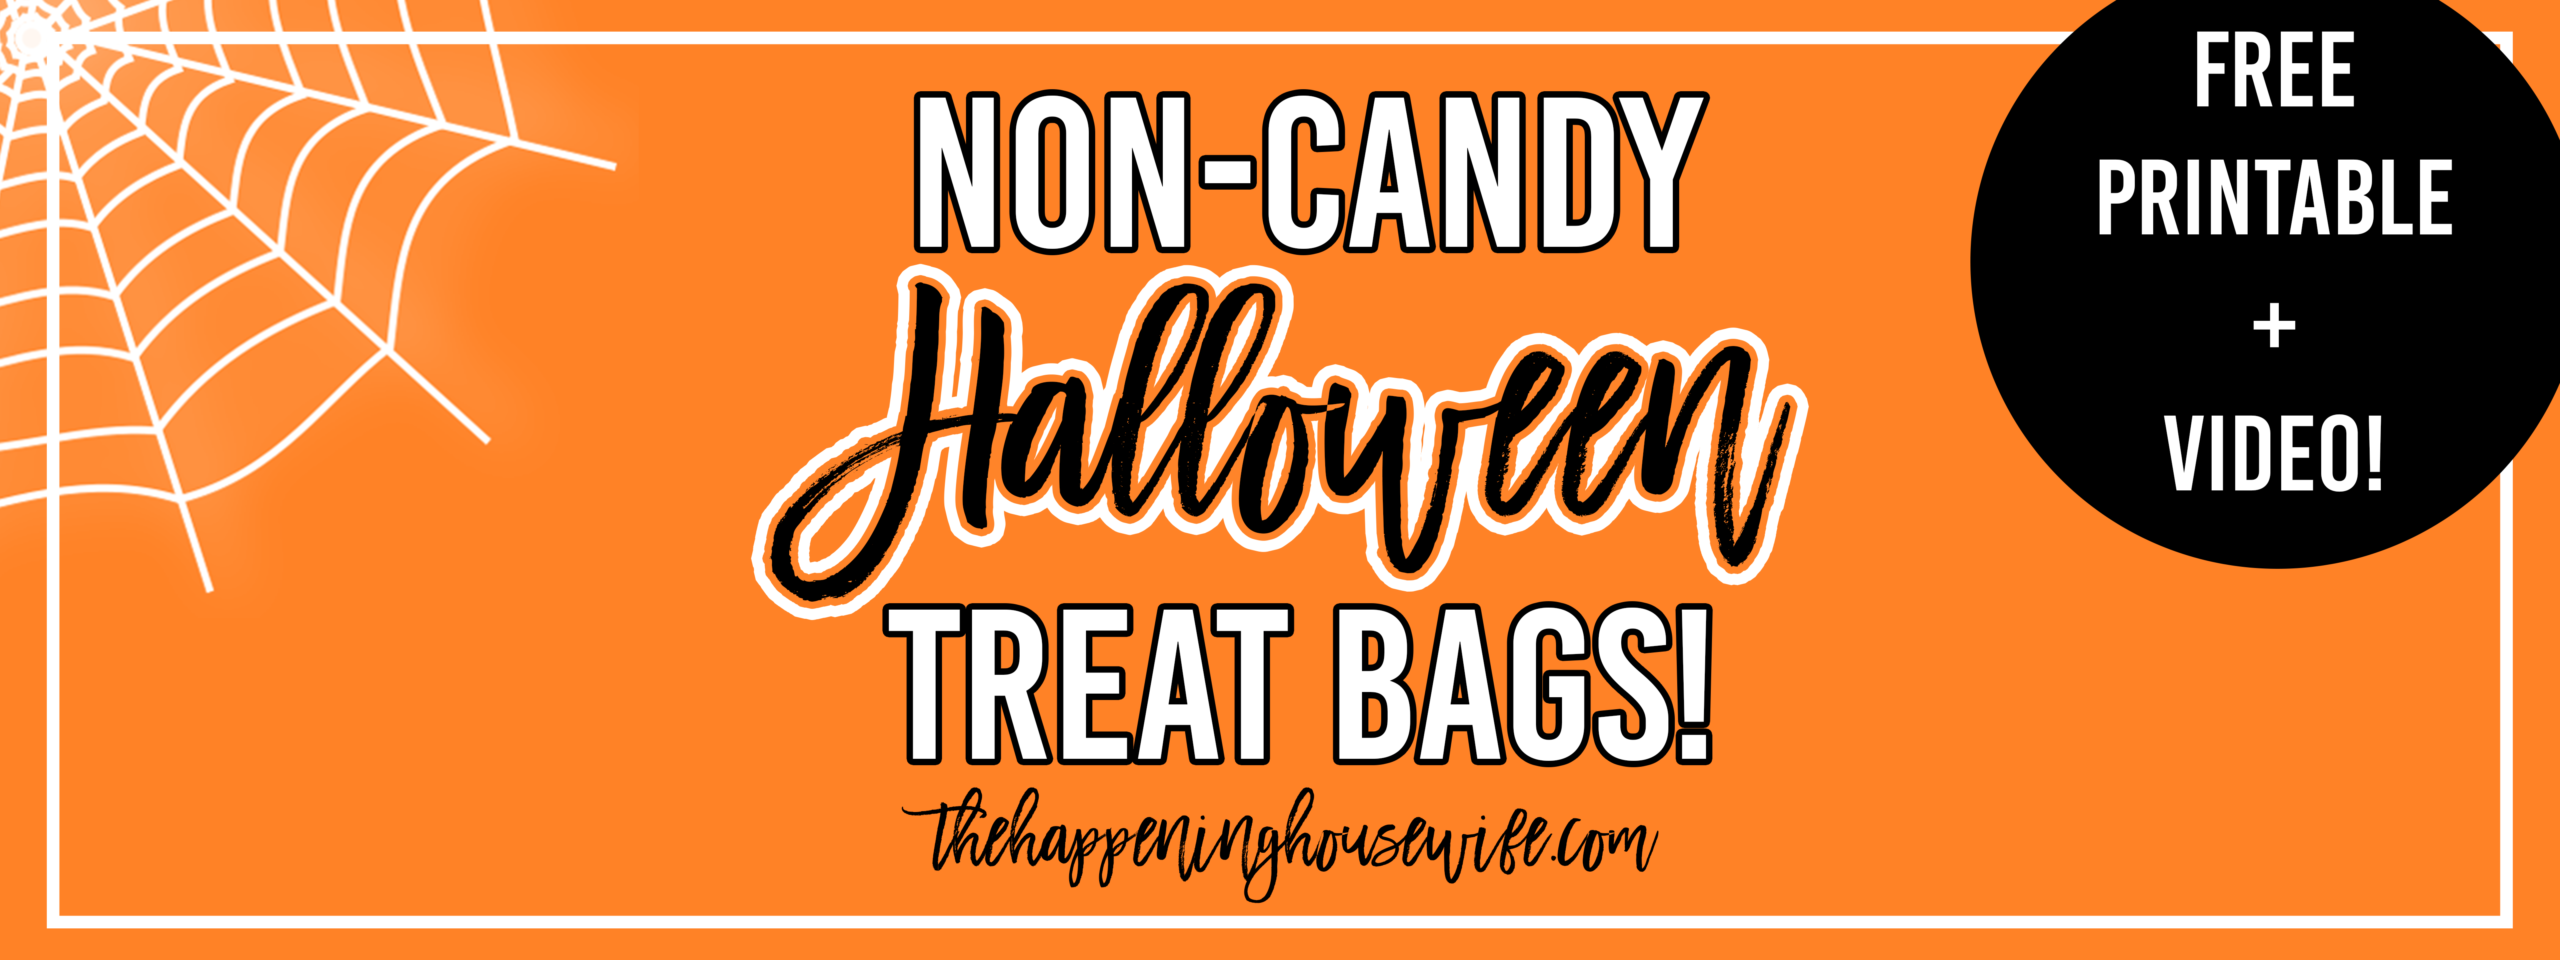 Non-Candy Halloween Treat Bags! + FREE Printable!